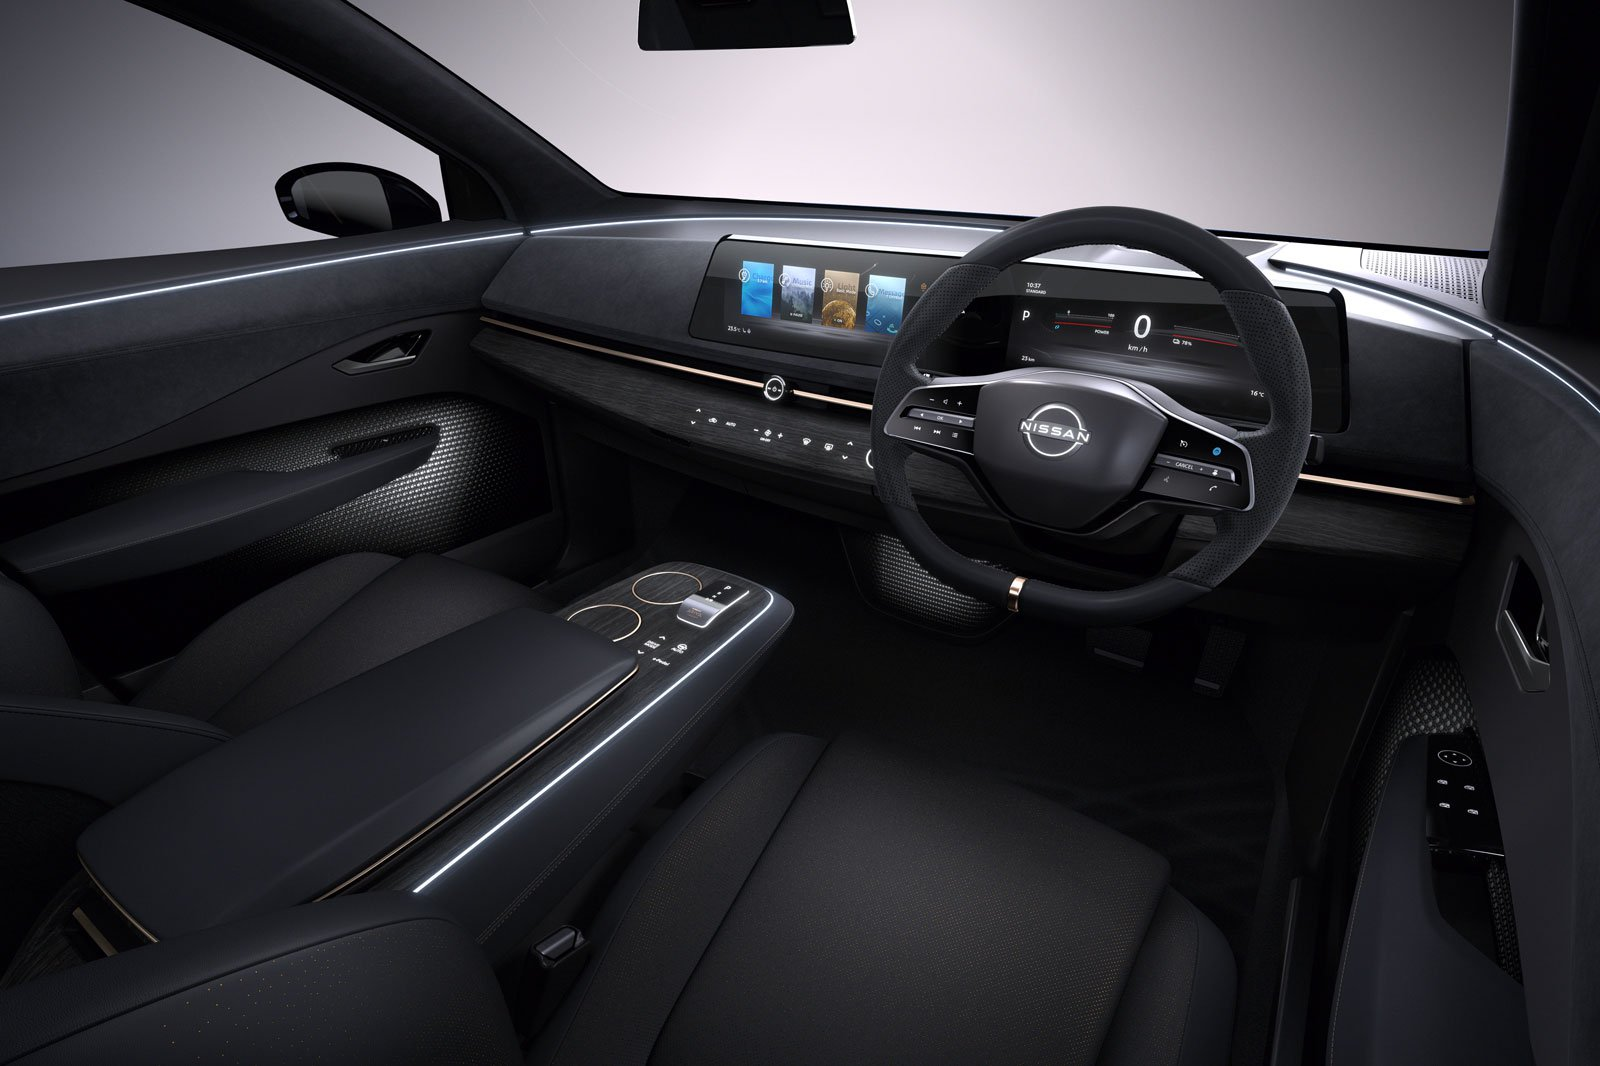 2021 Nissan Ariya interior and equipment